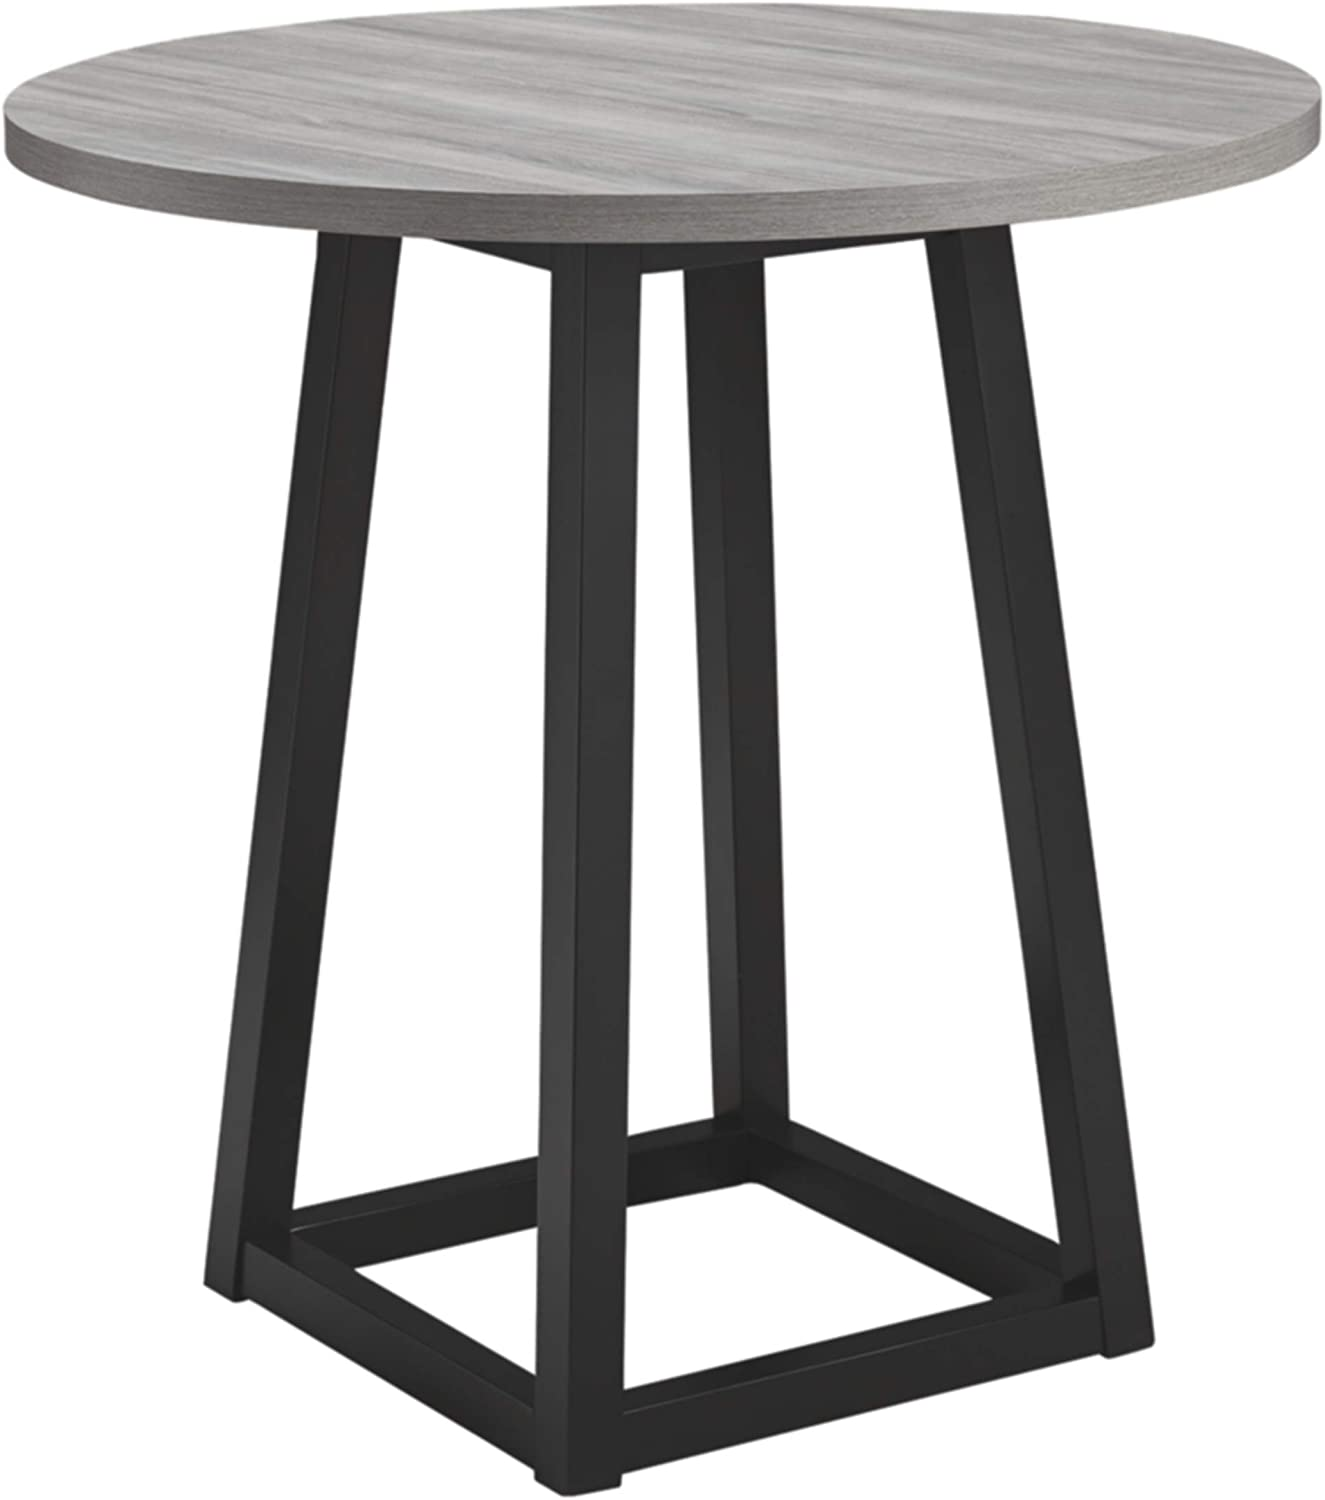 Signature Sale price Design by Ashley Showdell Dining Counter Modern Height Regular discount